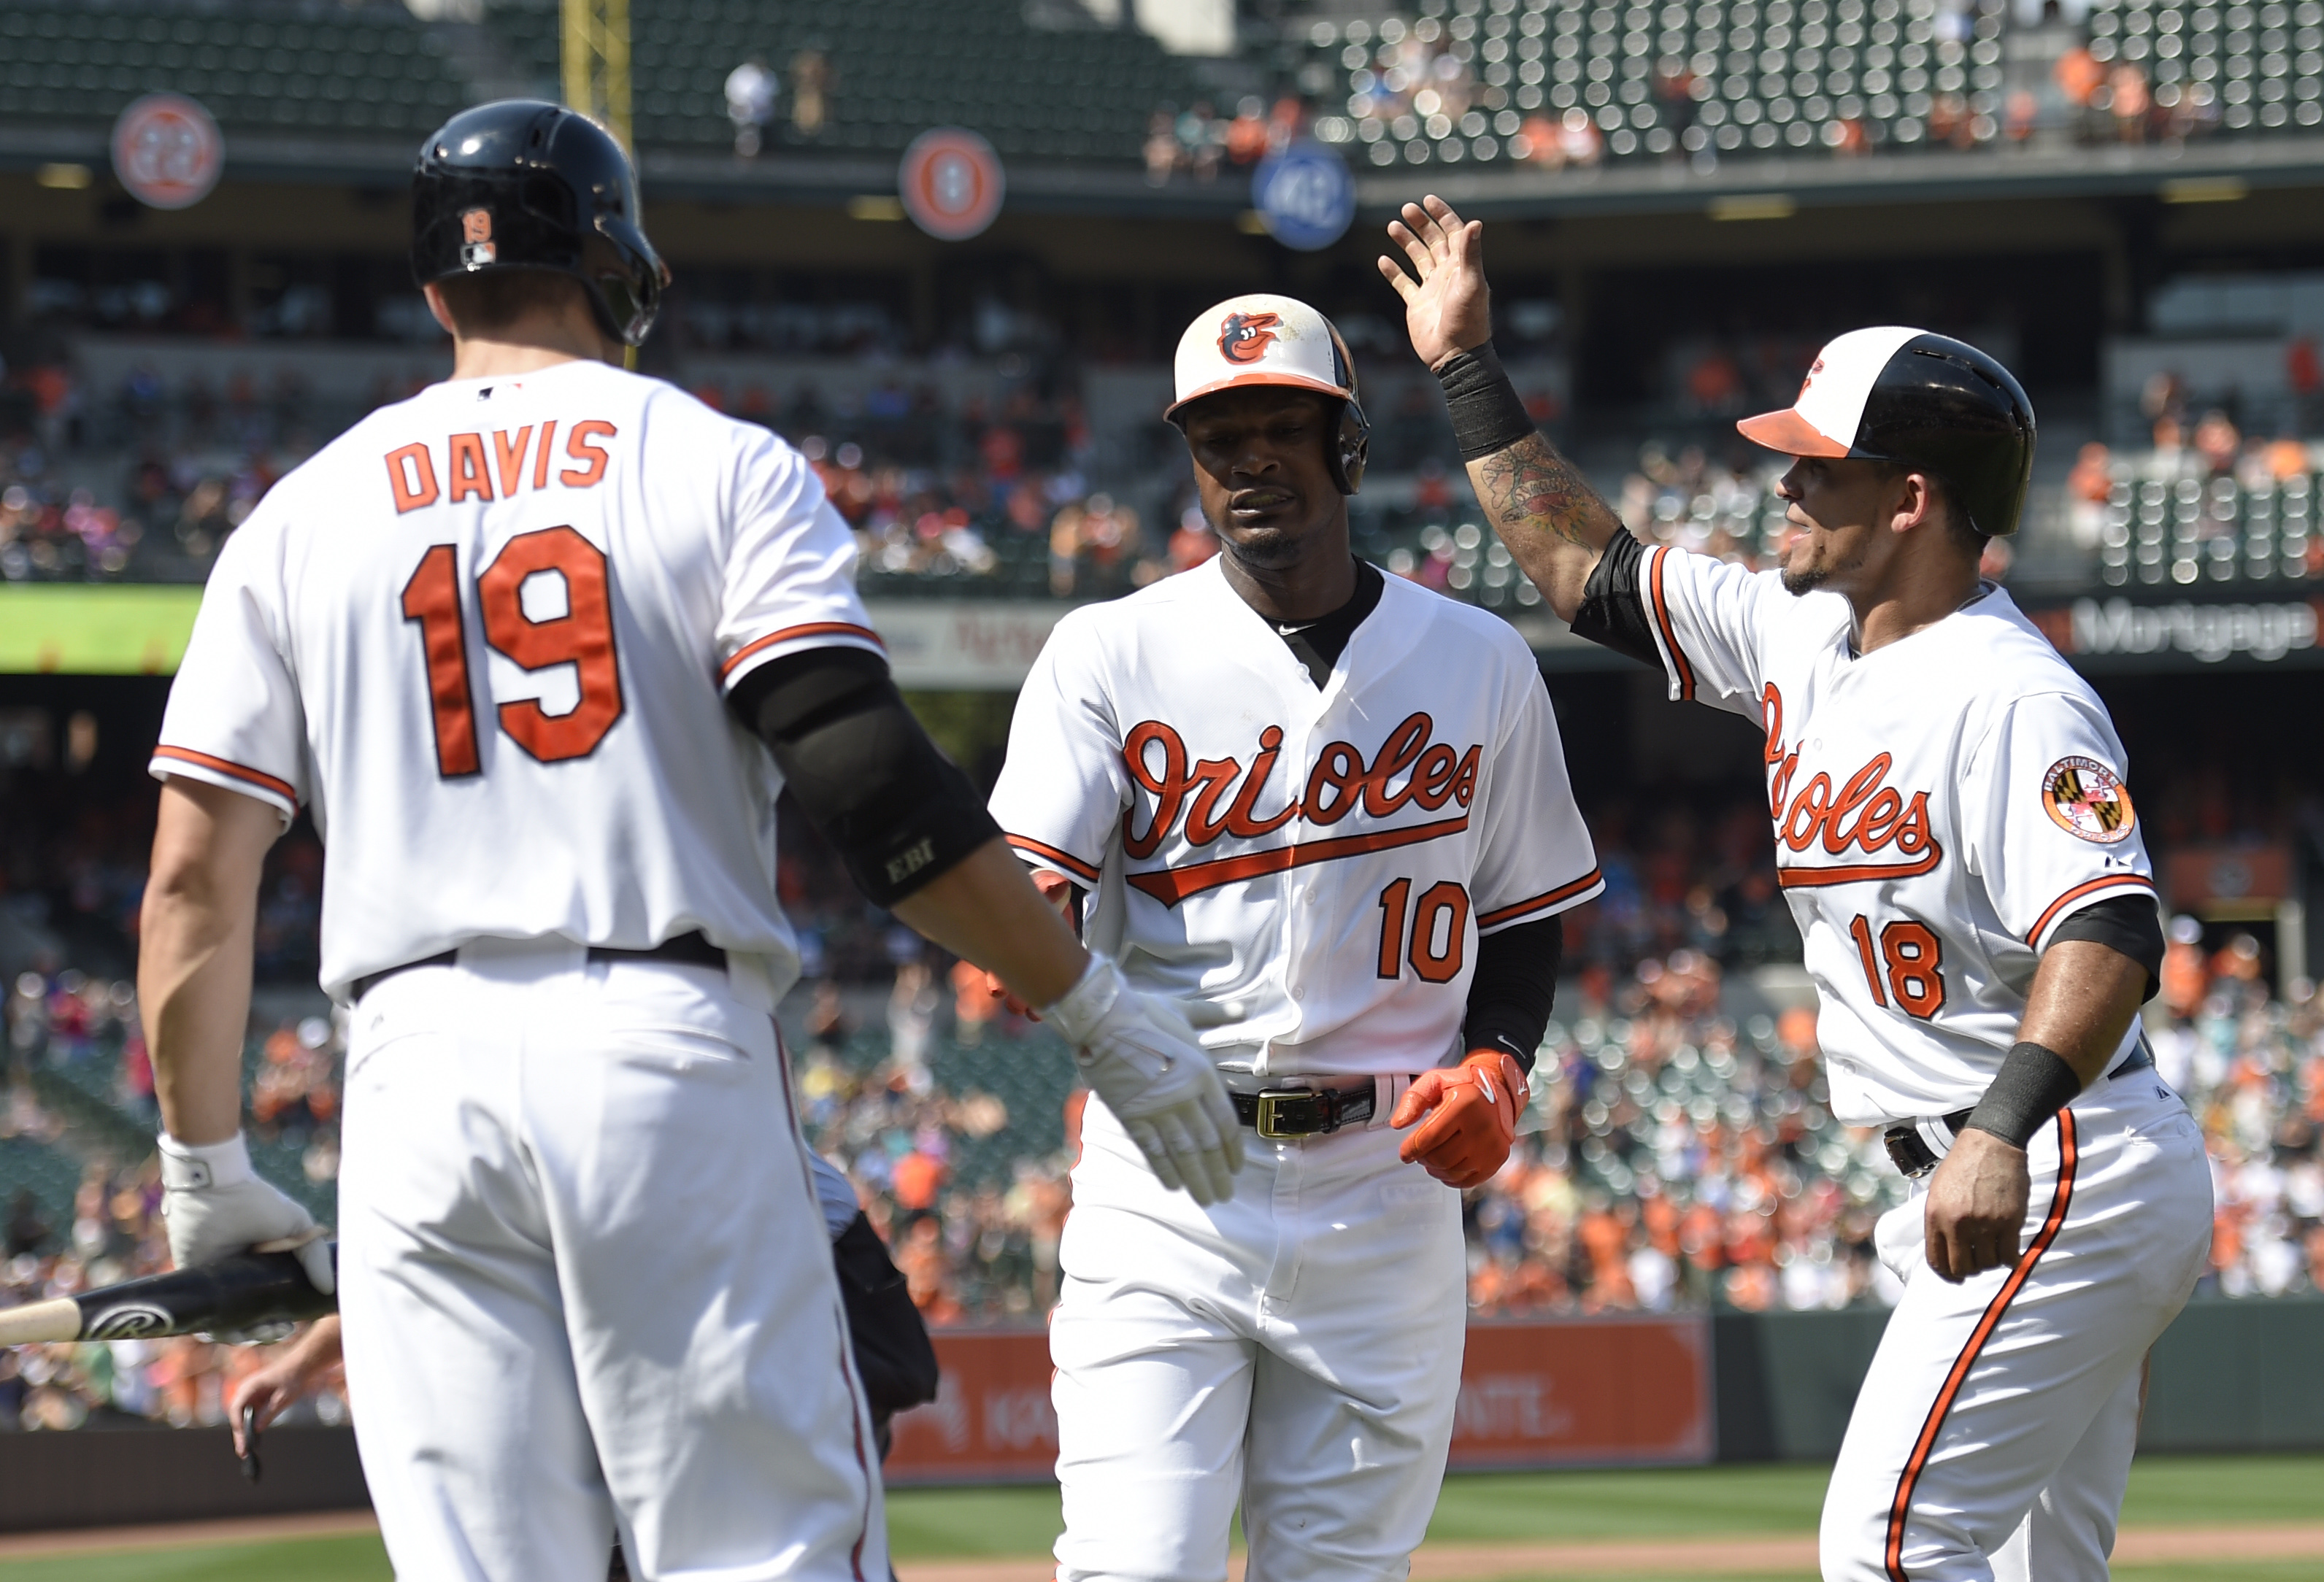 Baltimore Orioles' Adam Jones (10) celebrates his two-run home run with teammates Gerardo Parra (18) and Chris Davis (19) during the fifth inning of a baseball game against the Oakland Athletics, Sunday, Aug. 16, 2015, in Baltimore. (AP Photo/Nick Wass)